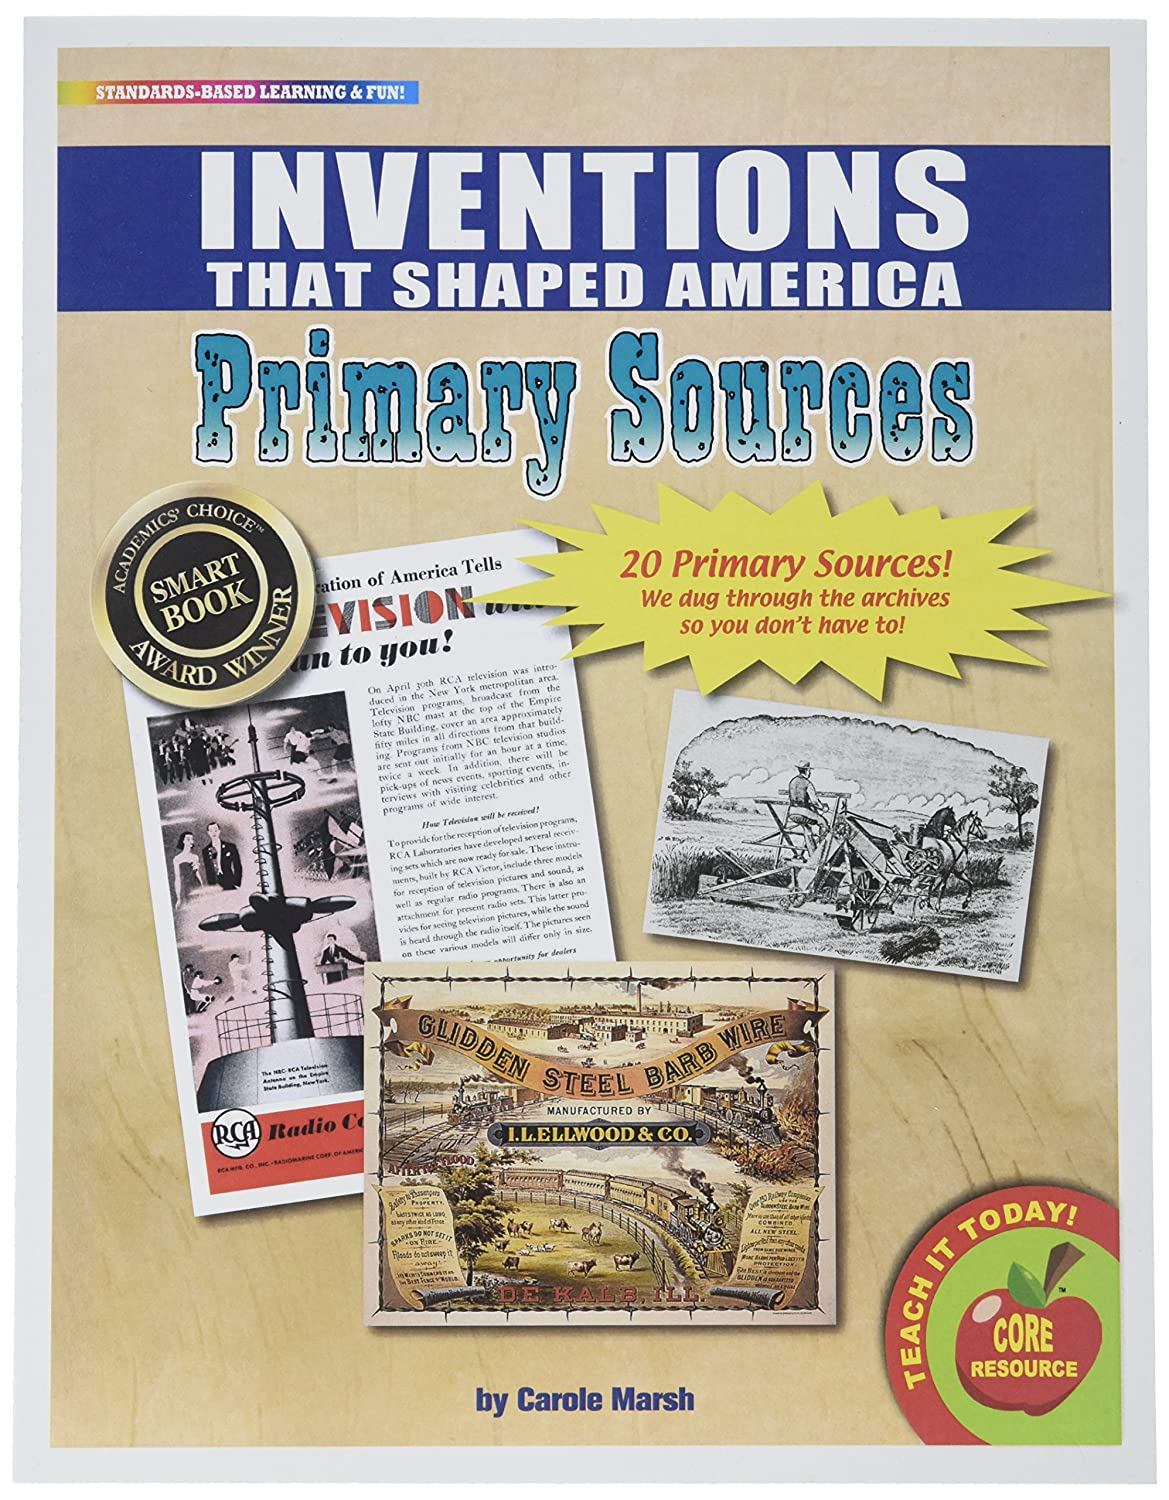 Inventions That Shaped America Primary Sources Pack Gallopade International 9780635116314 NON-CLASSIFIABLE